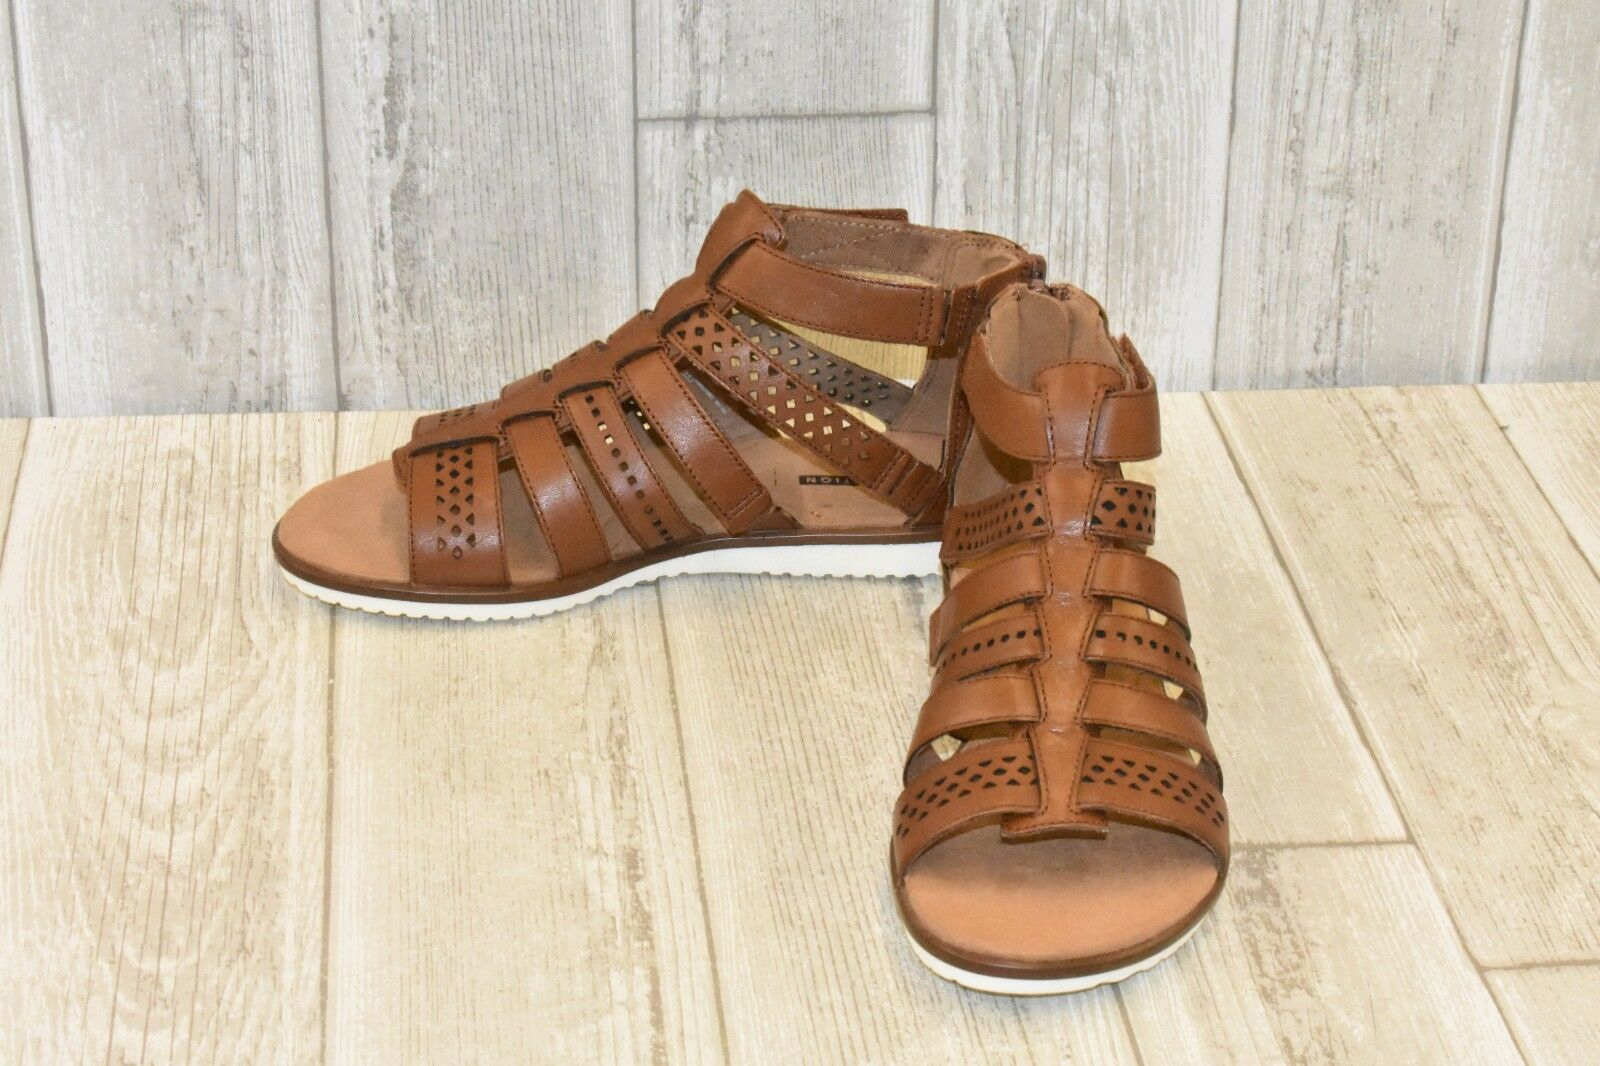 Clarks Kele Lotus Sandals - Women's Size 6.5M, Tan Leather